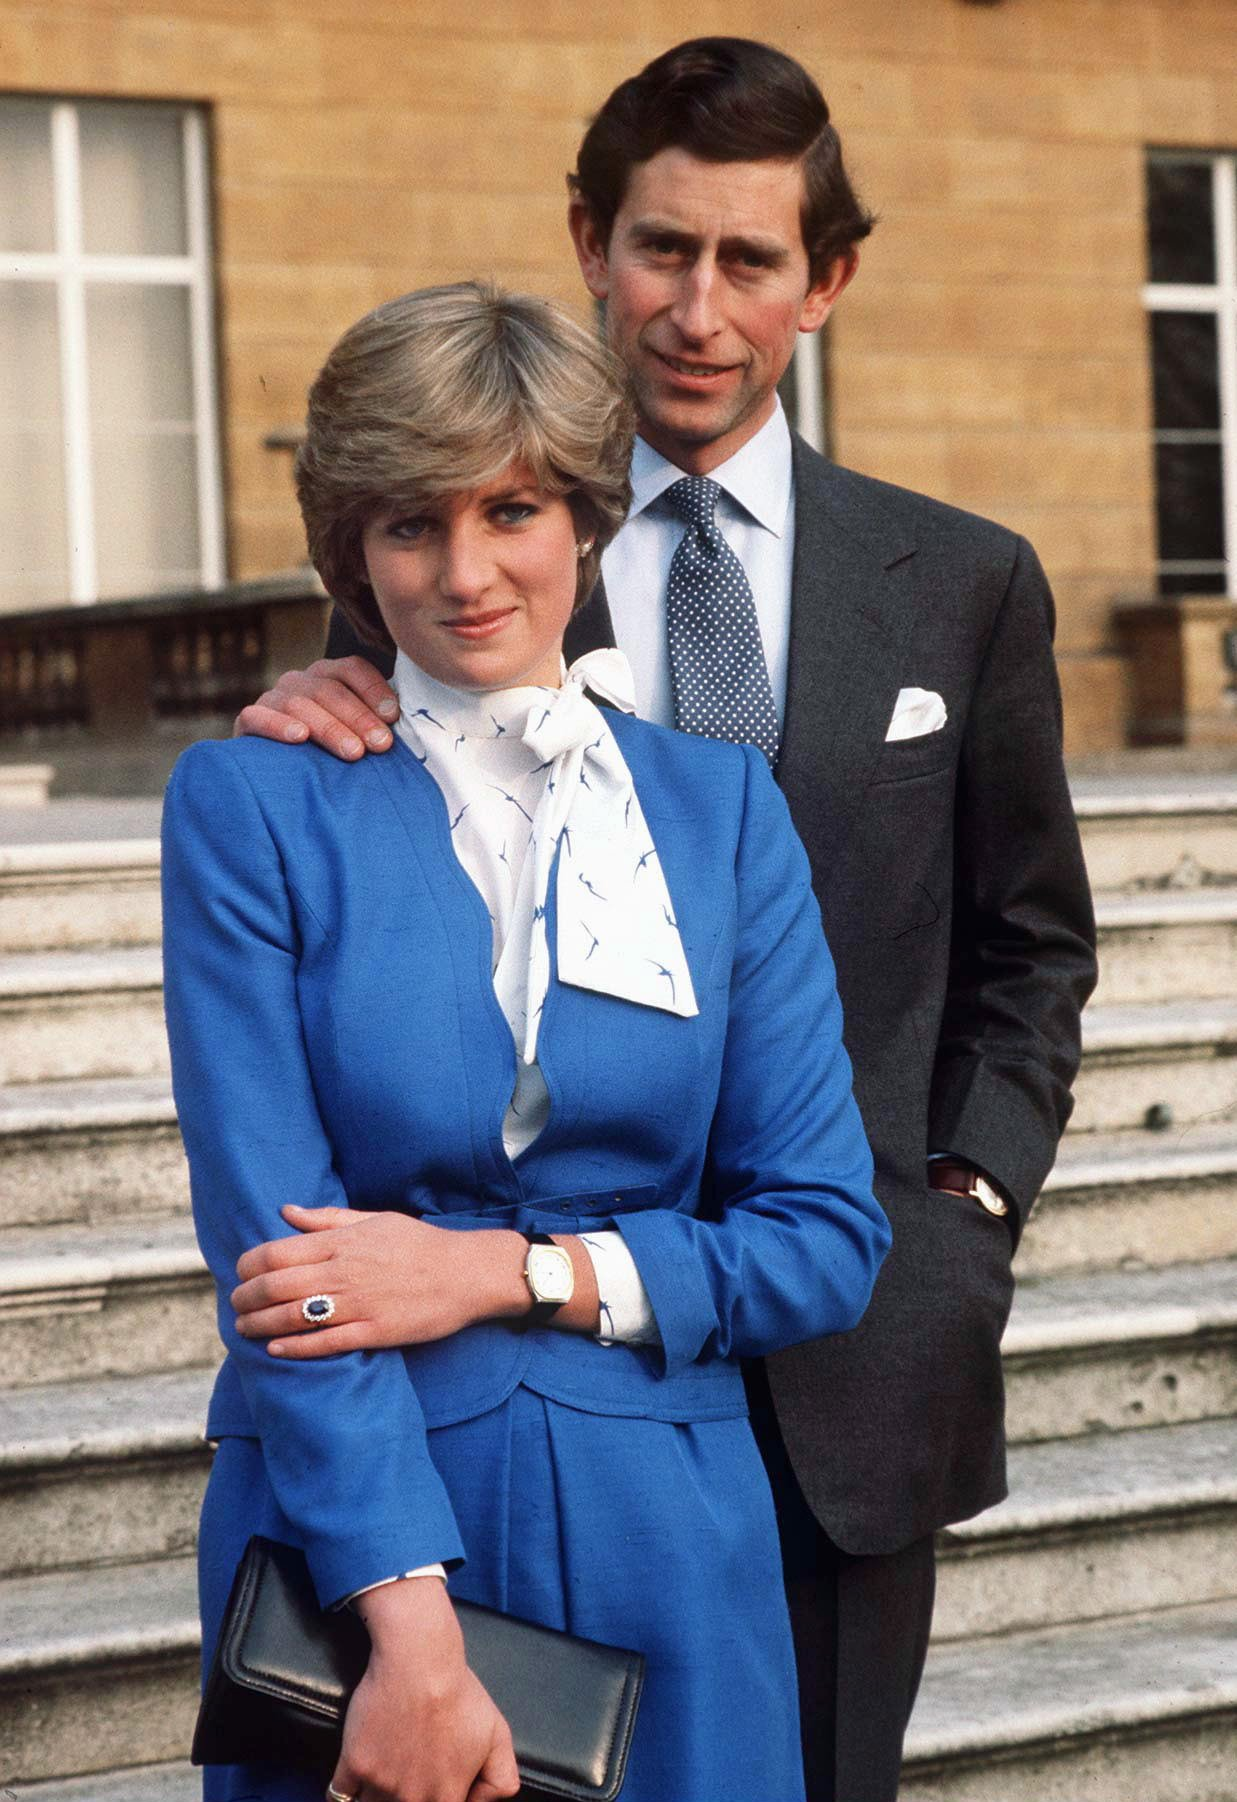 Image Credits: Getty Images/Tim Graham Photo Library | Prince Charles and Lady Diana Spencer announcing their engagement